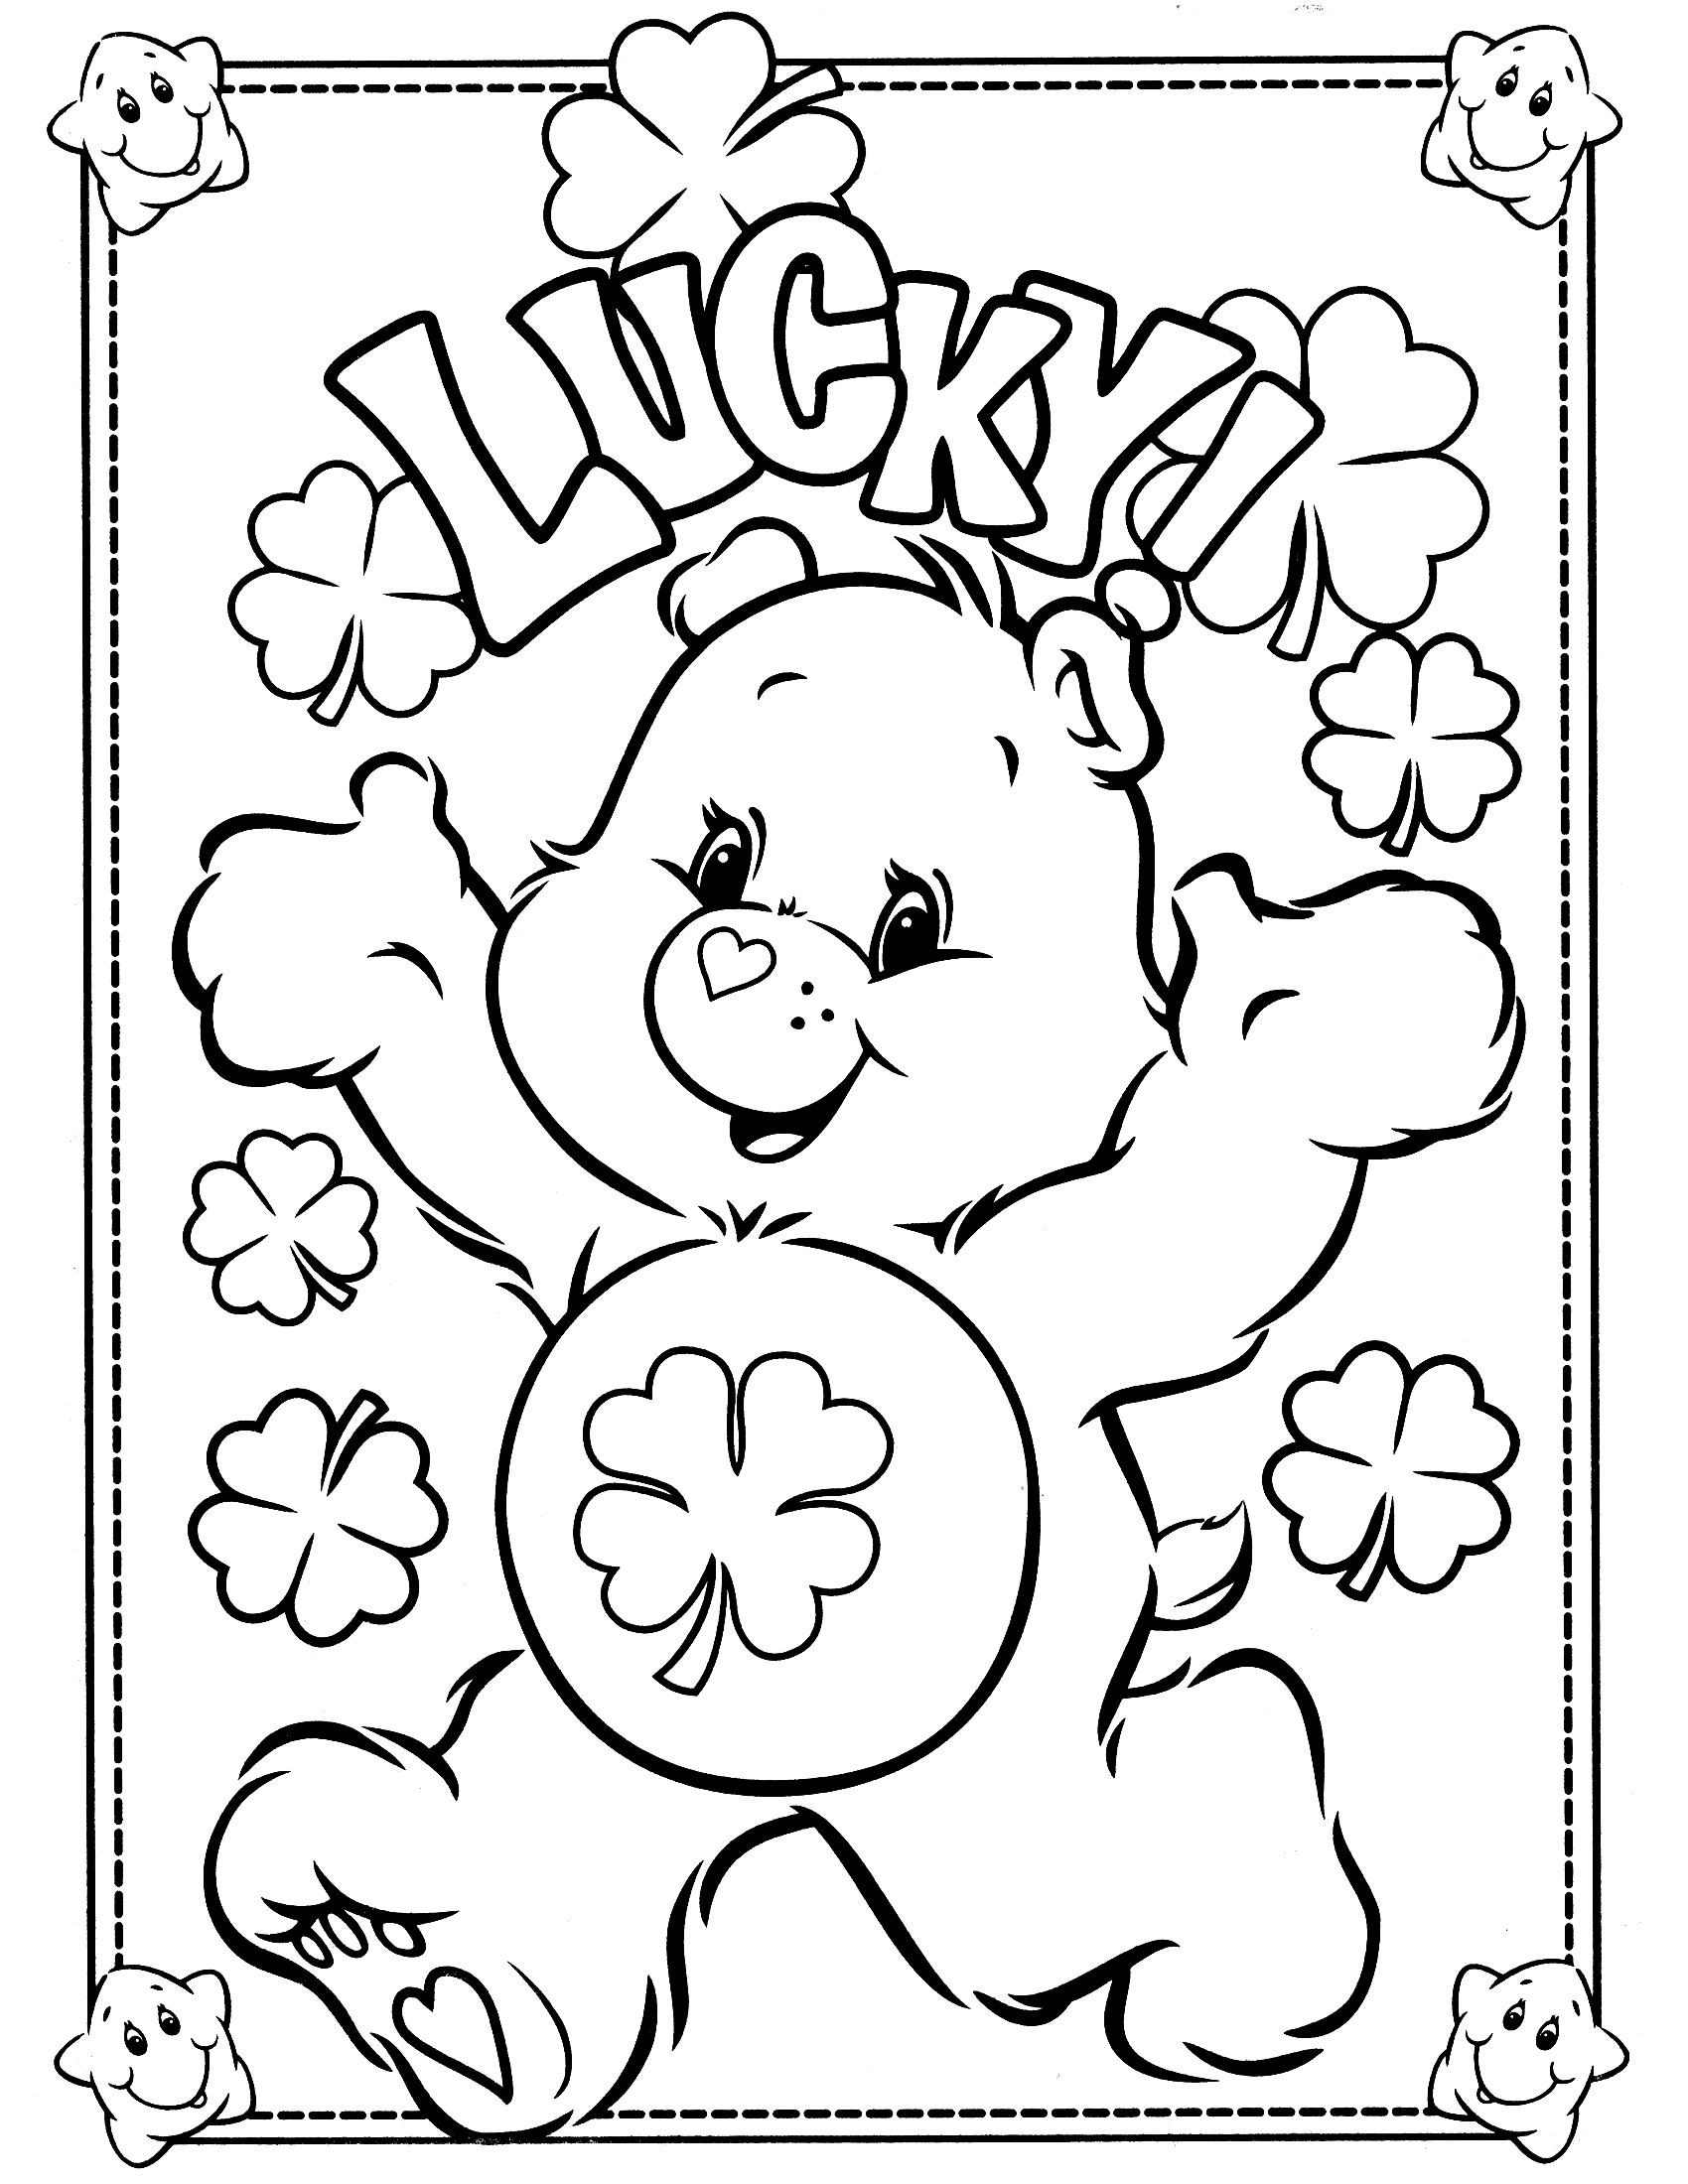 carebear coloring pages - photo#6